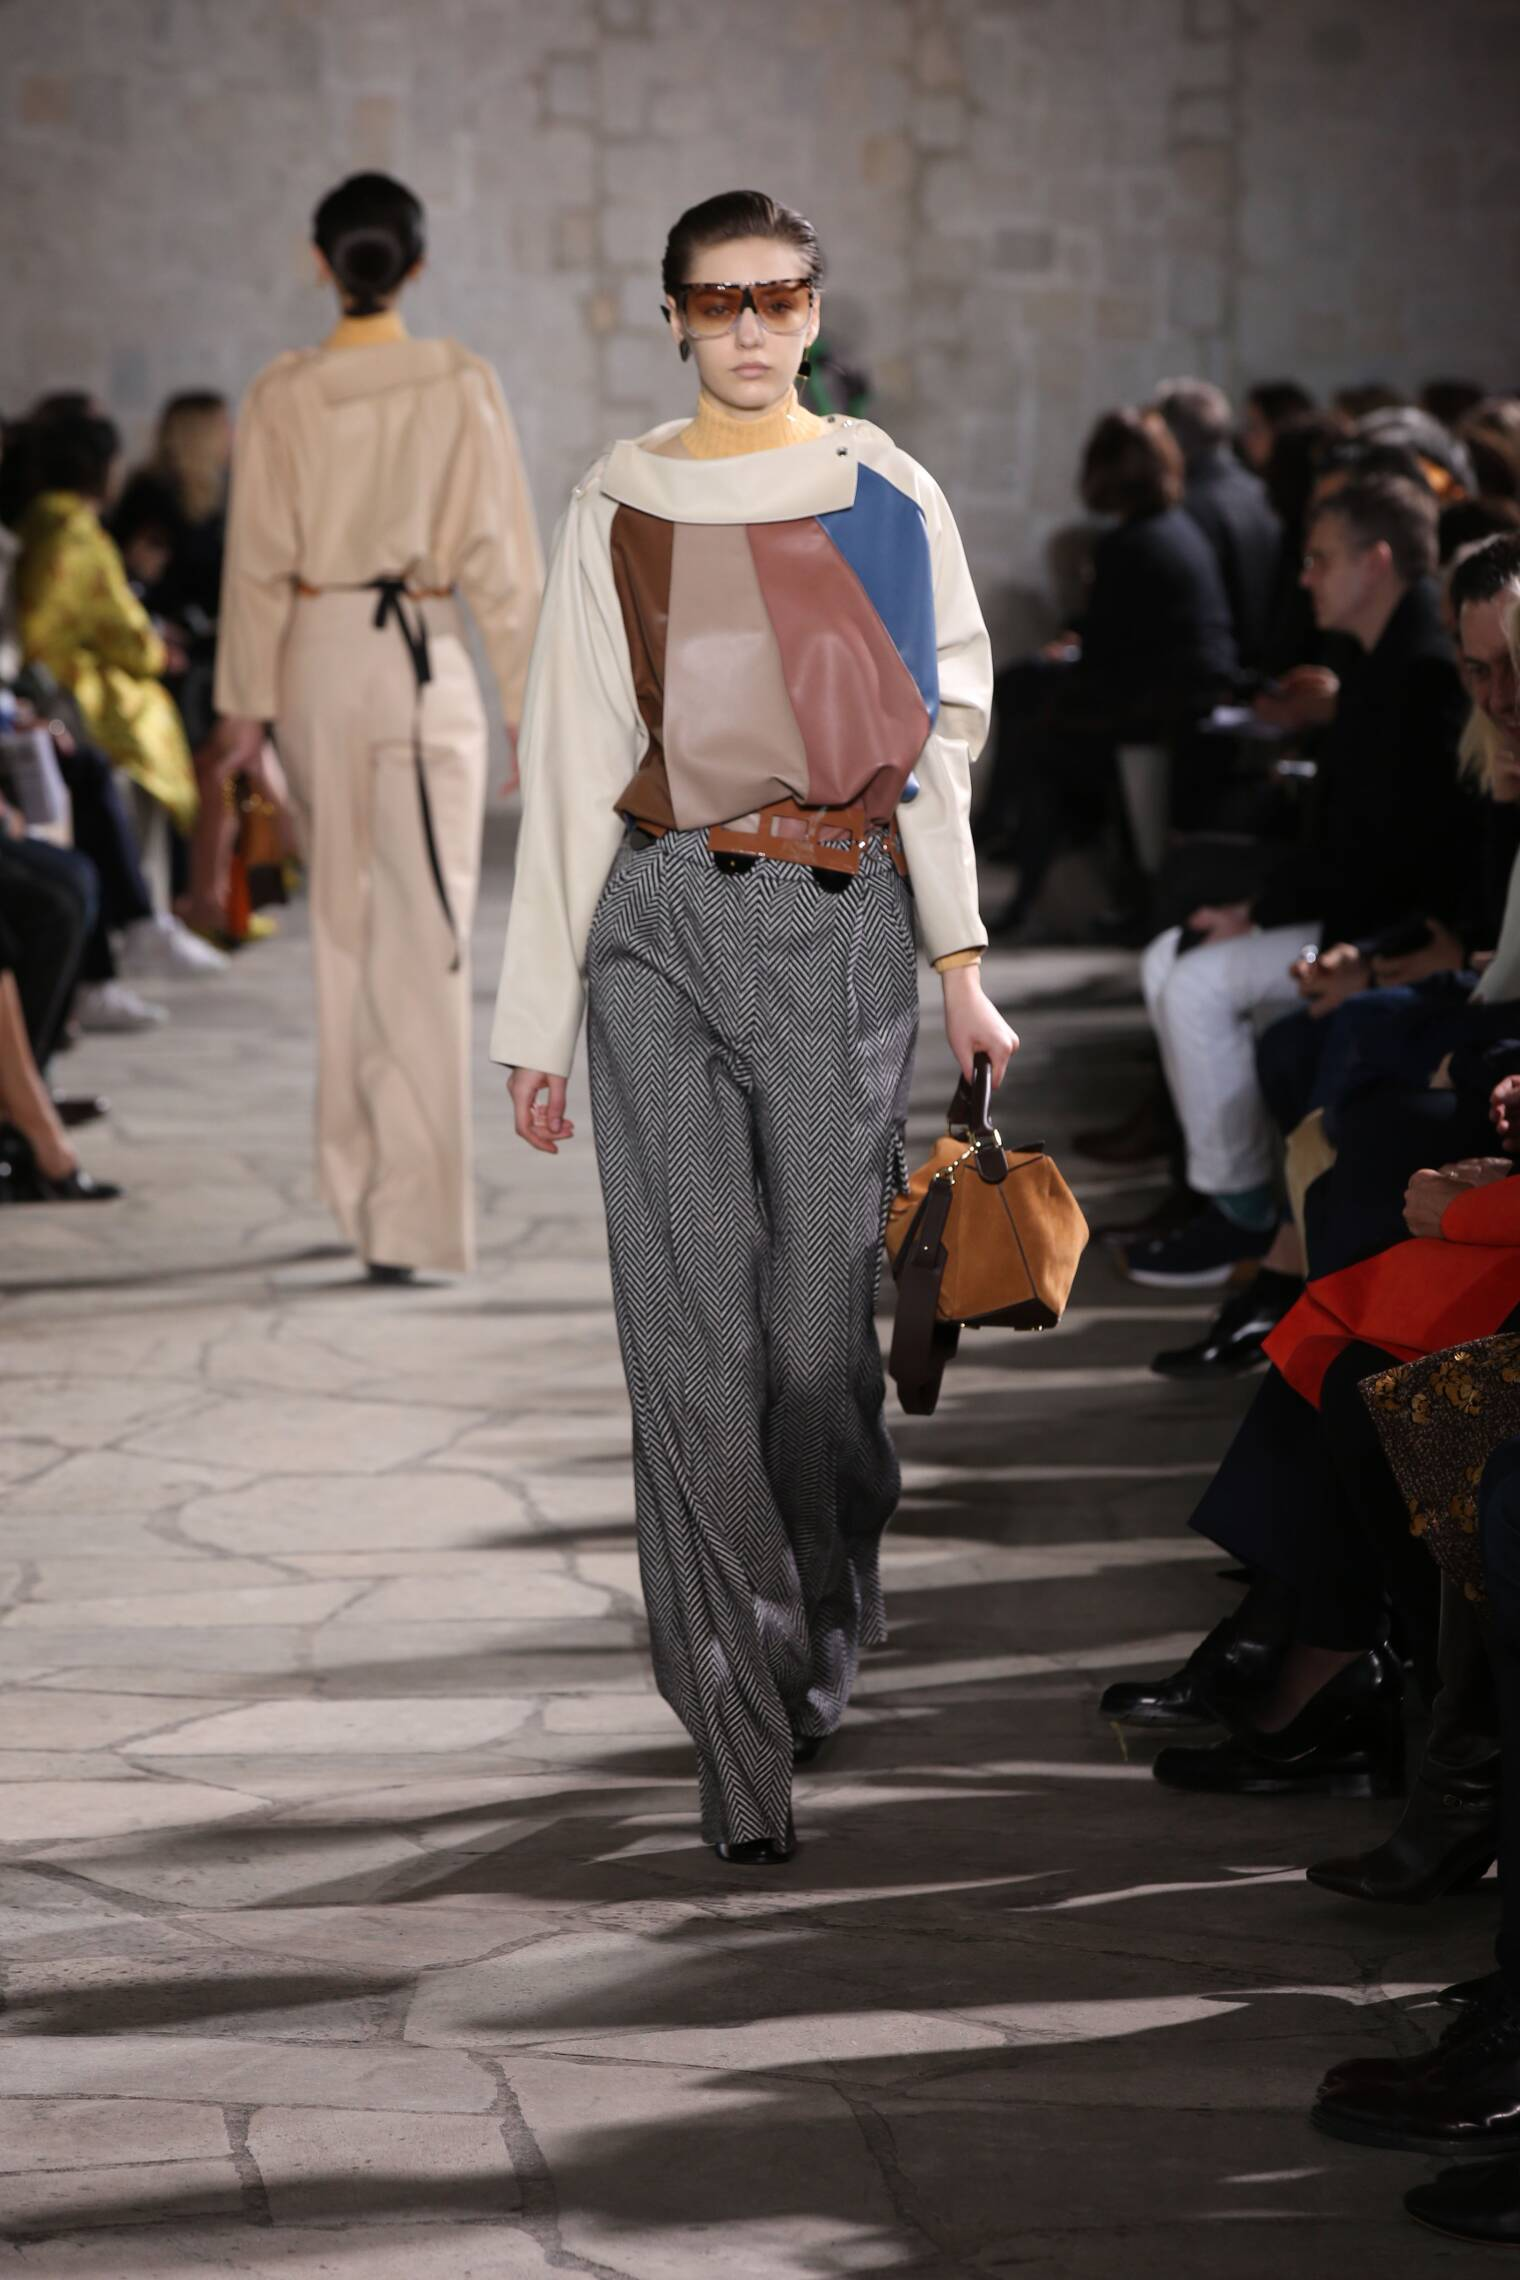 Catwalk Loewe Fall Winter 2015 16 Women's Collection Paris Fashion Week